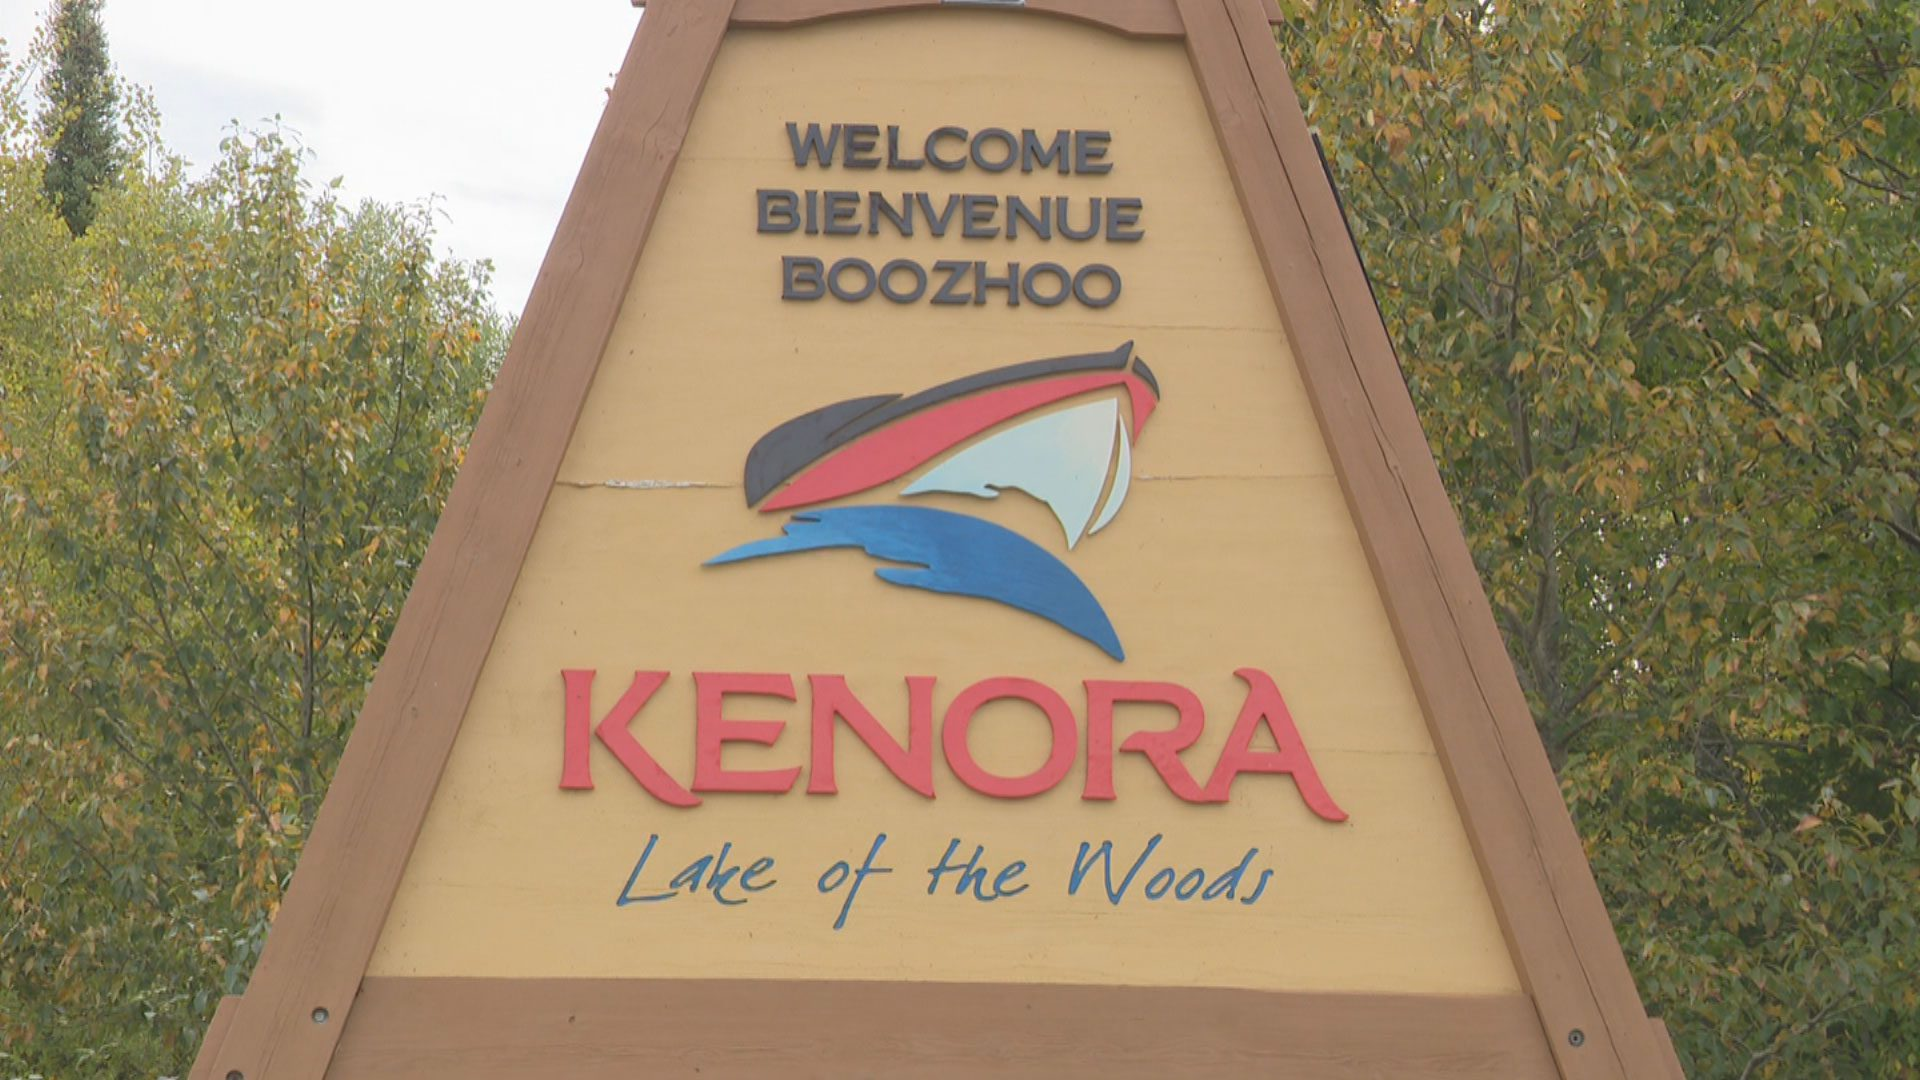 Kenora riding debate features talk on climate and homelessness